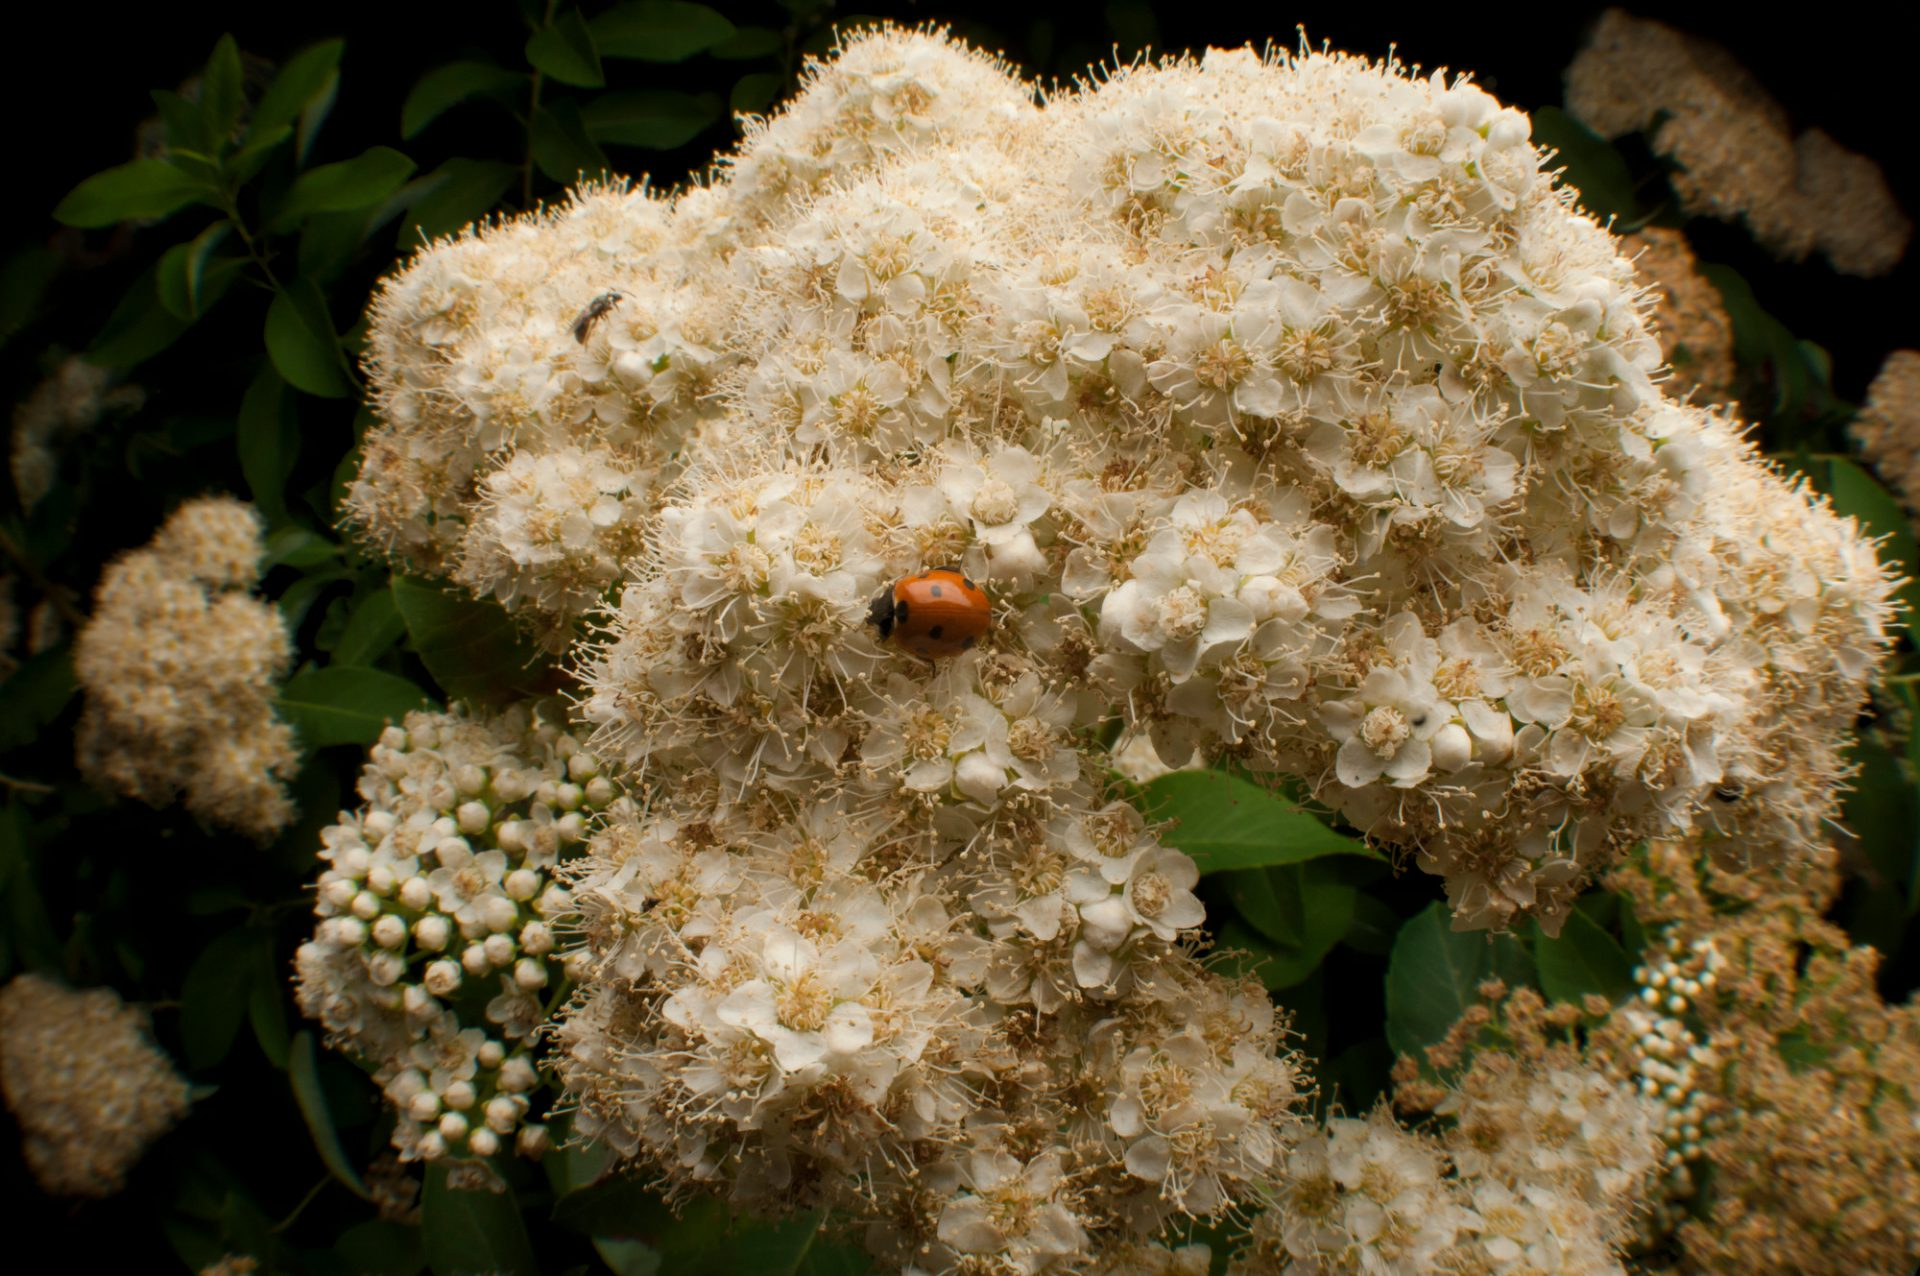 Photo: A federally threatened Virginia spiraea, Spiraea virginiana.